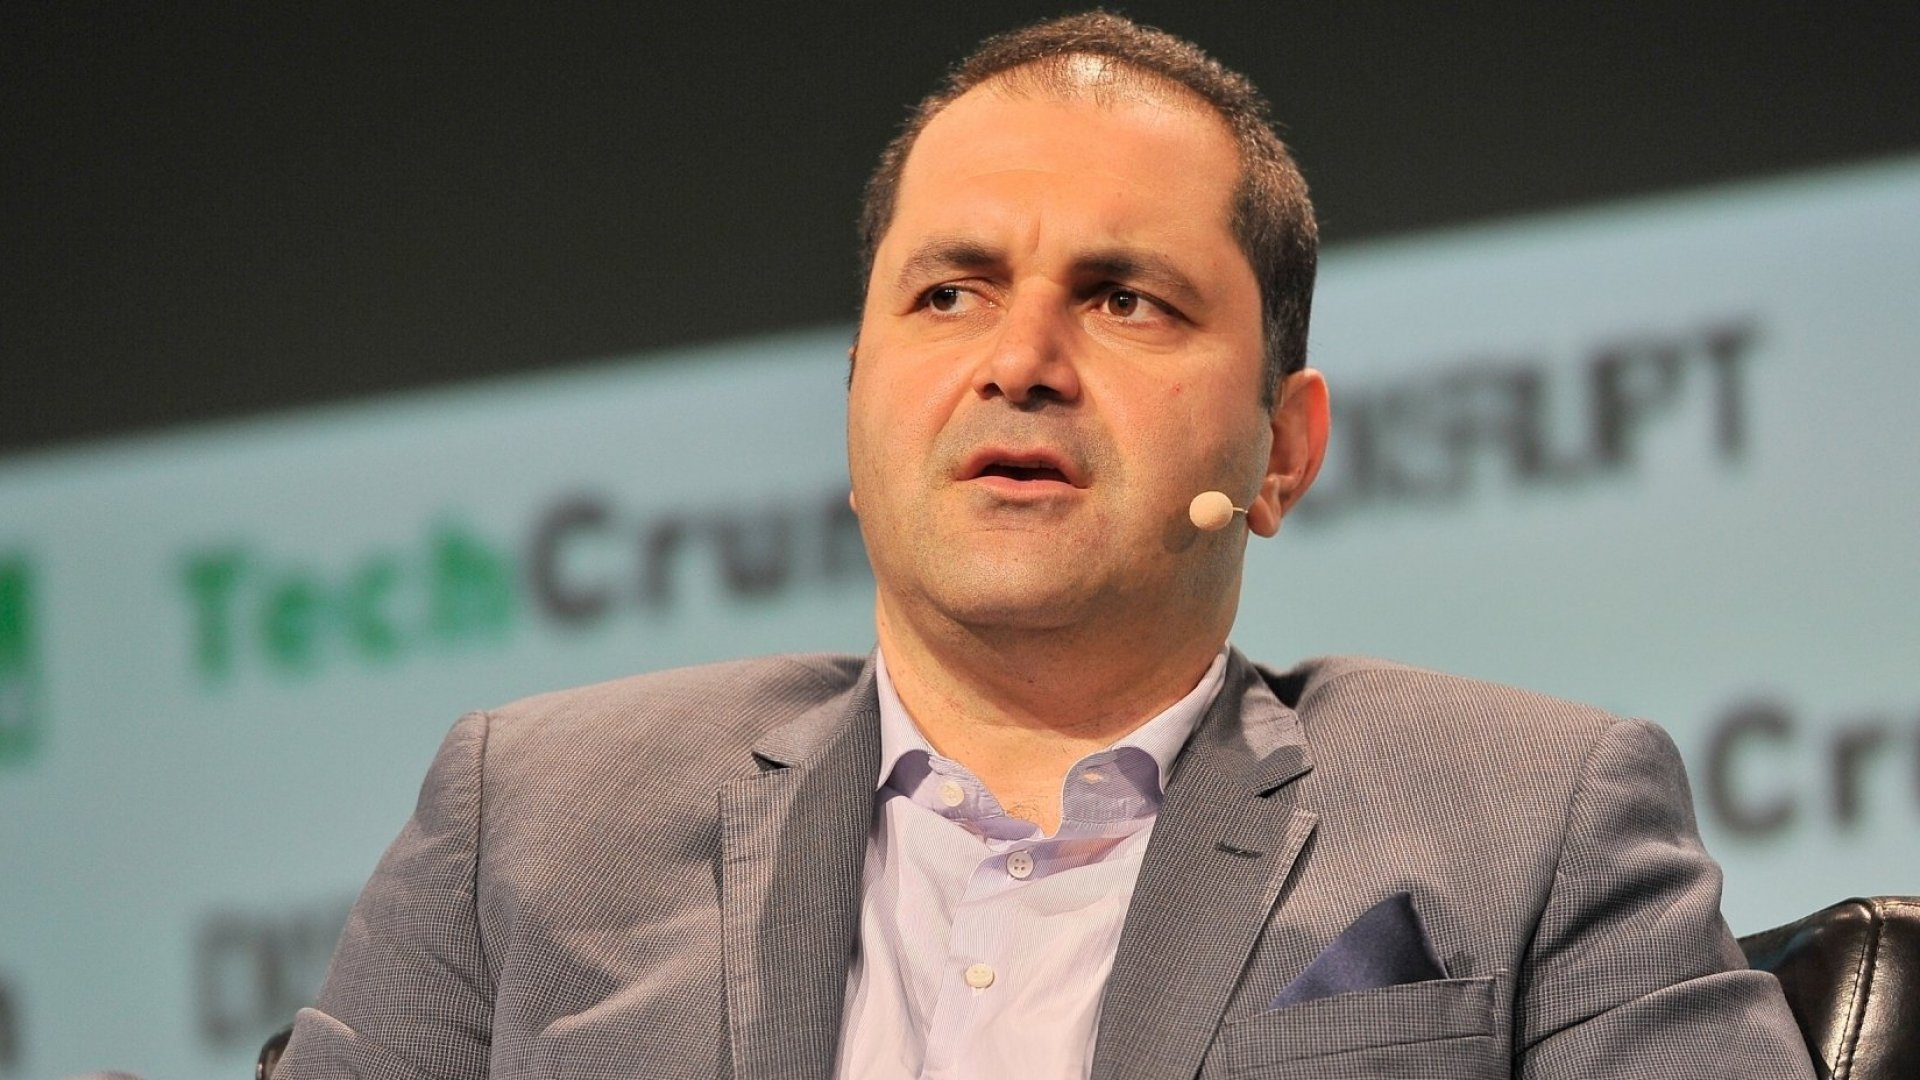 Shervin Pishevar Resigns From Sherpa Capital Following Sexual Harassment Allegations